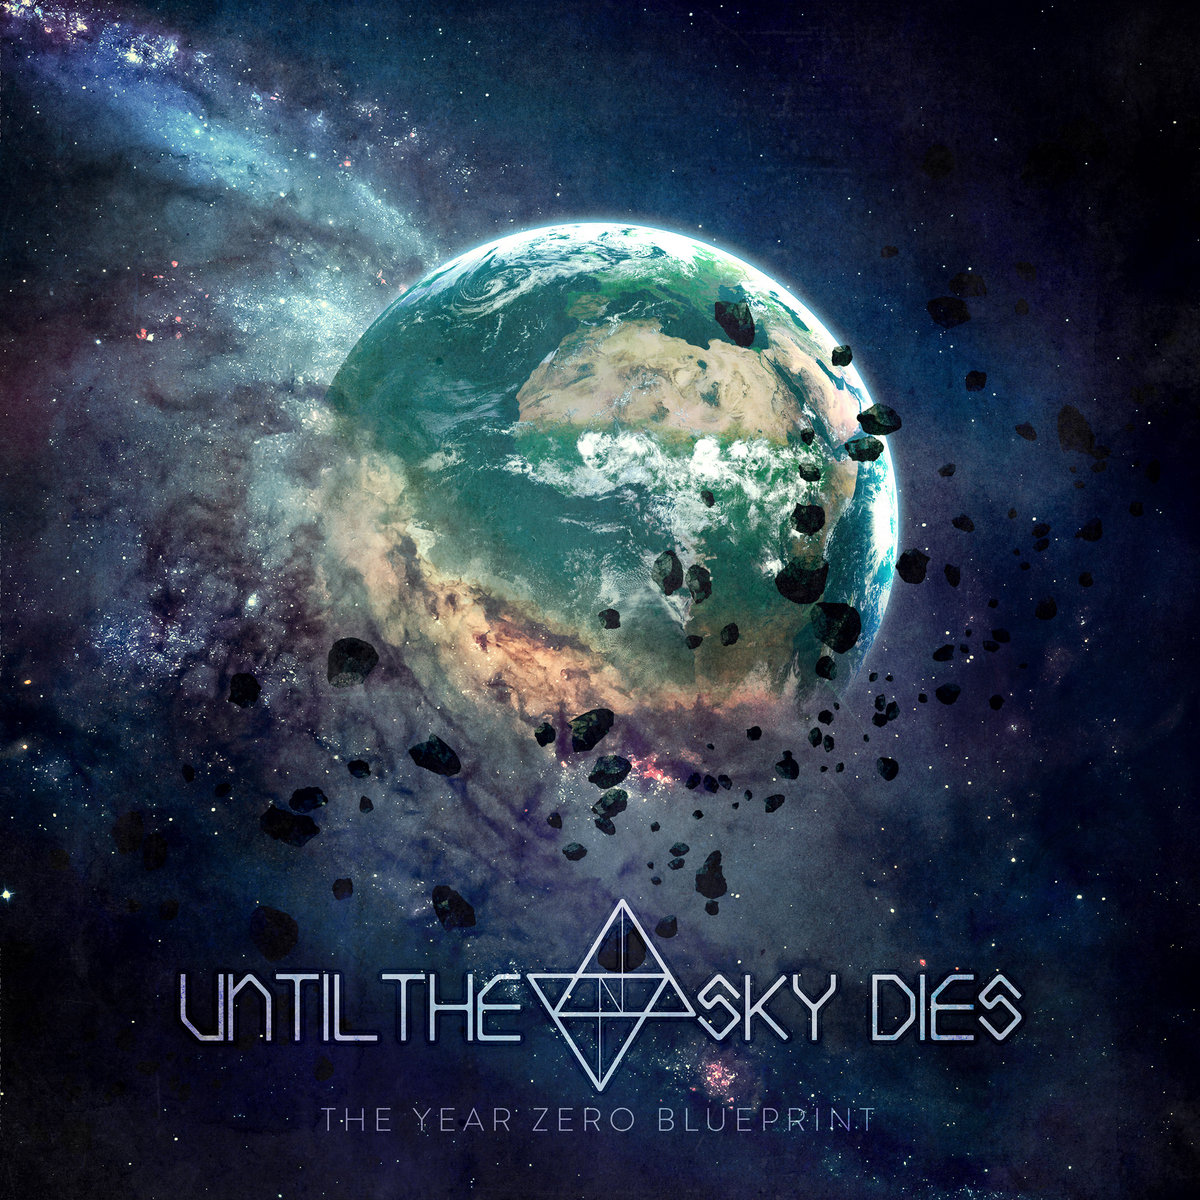 The year zero blueprint cimmerian shade recordings by until the sky dies malvernweather Choice Image